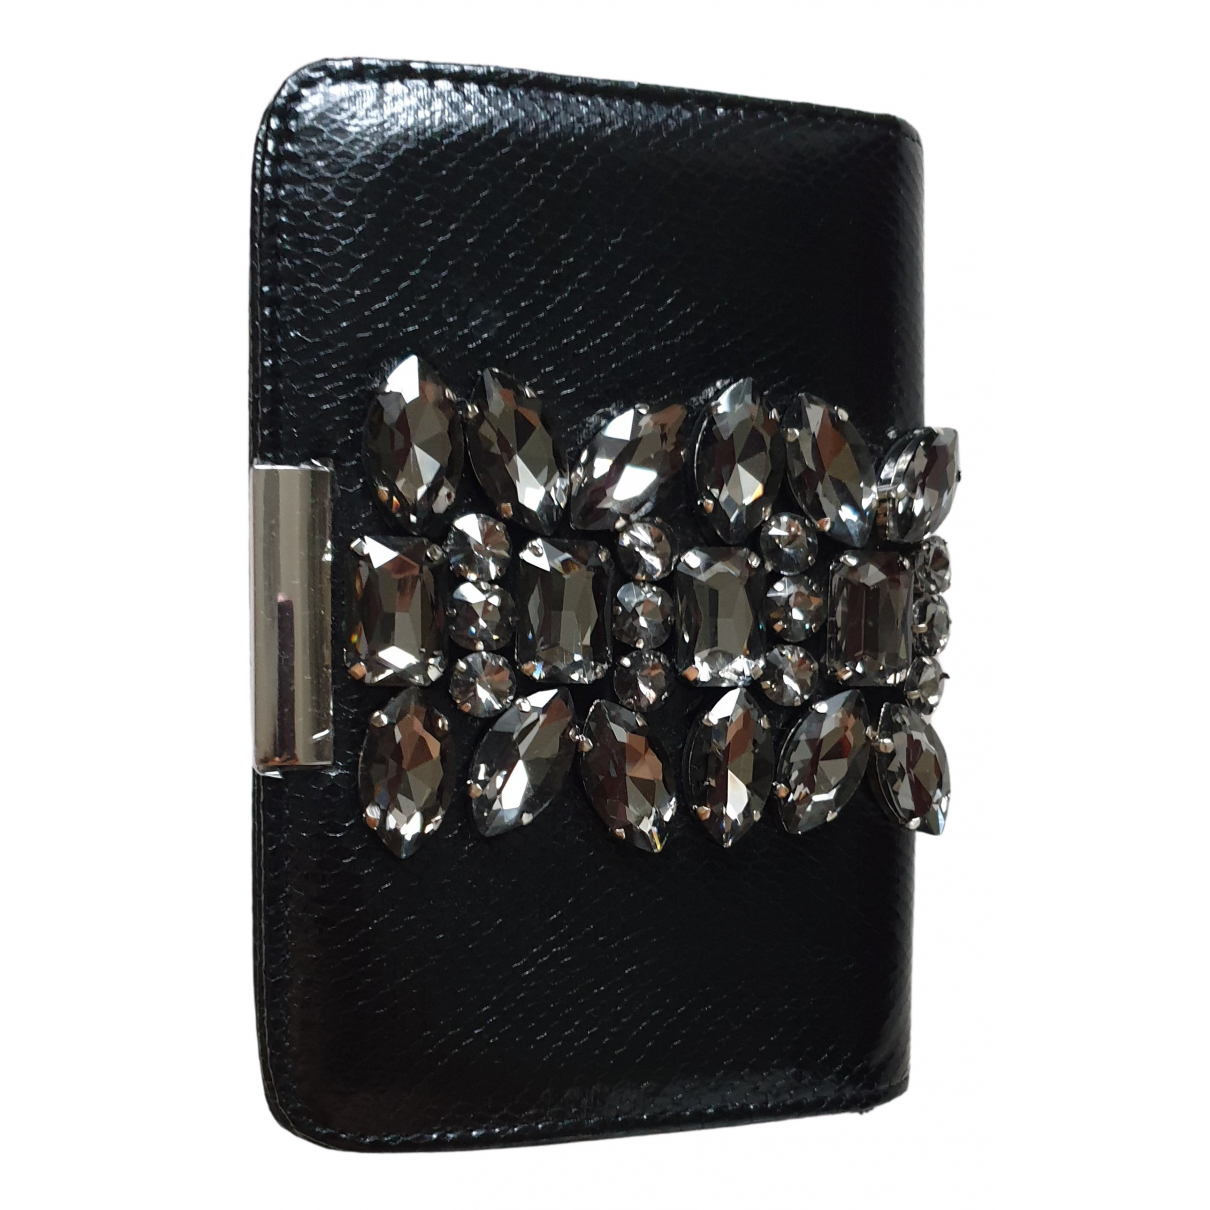 Uterque N Black Exotic leathers Clutch bag for Women N